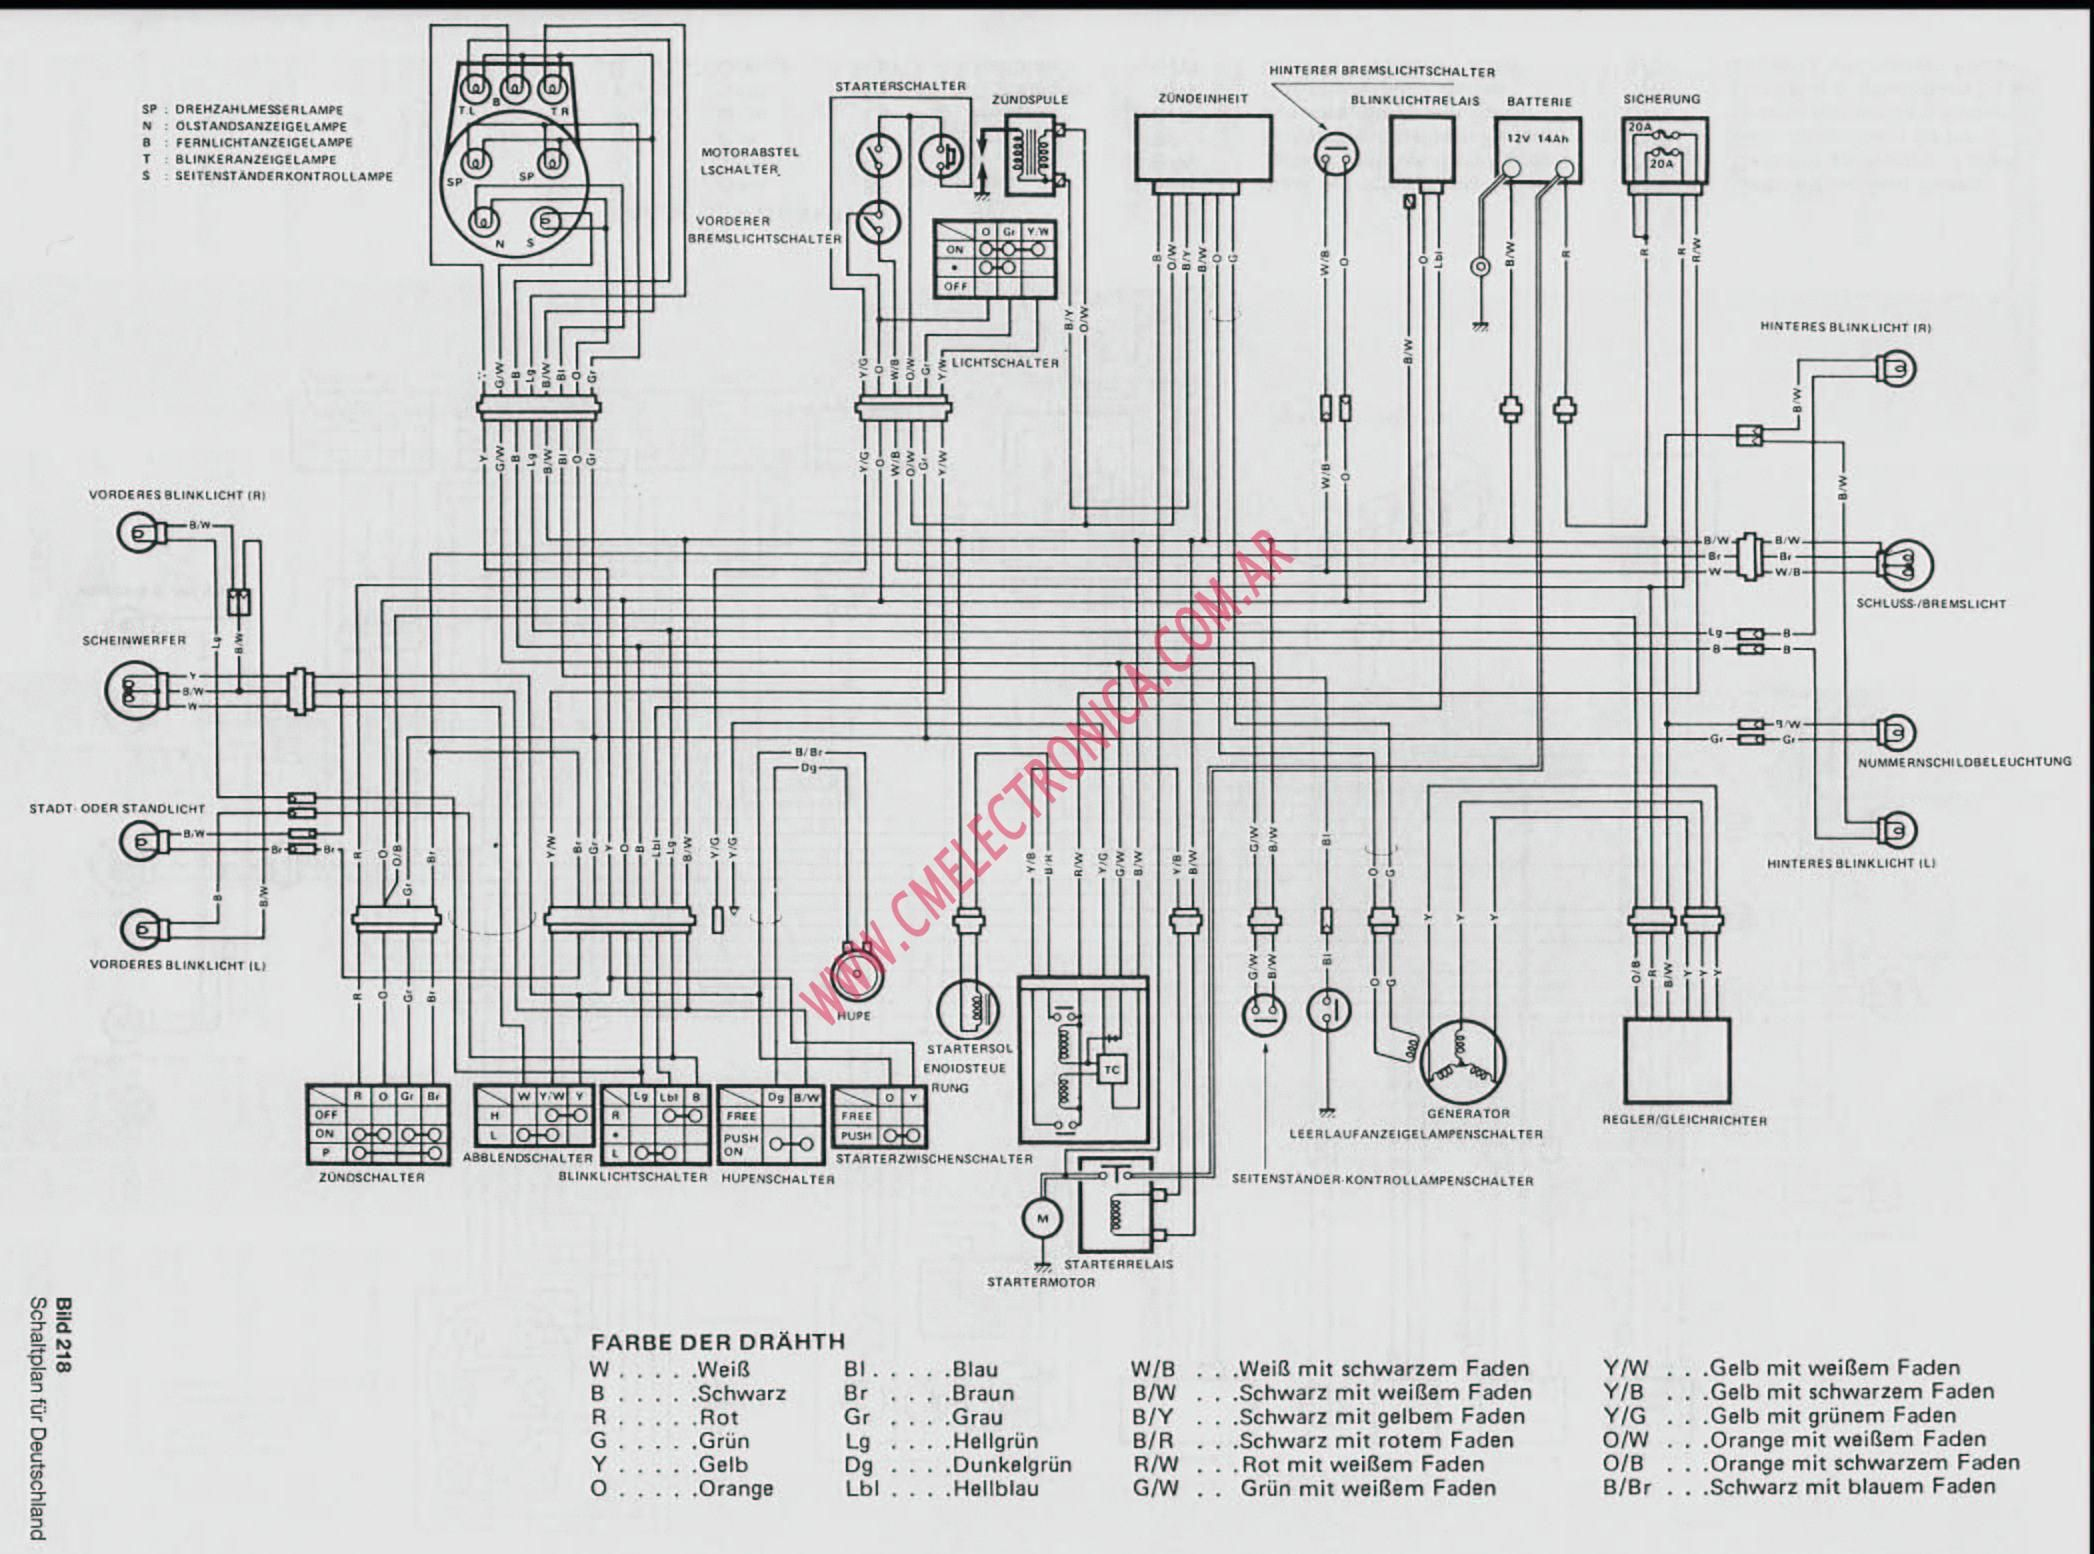 2000 suzuki intruder 800 wiring diagram wiring diagramsuzuki volusia 800 fuse box wiring librarybest of diagram [ 2094 x 1554 Pixel ]